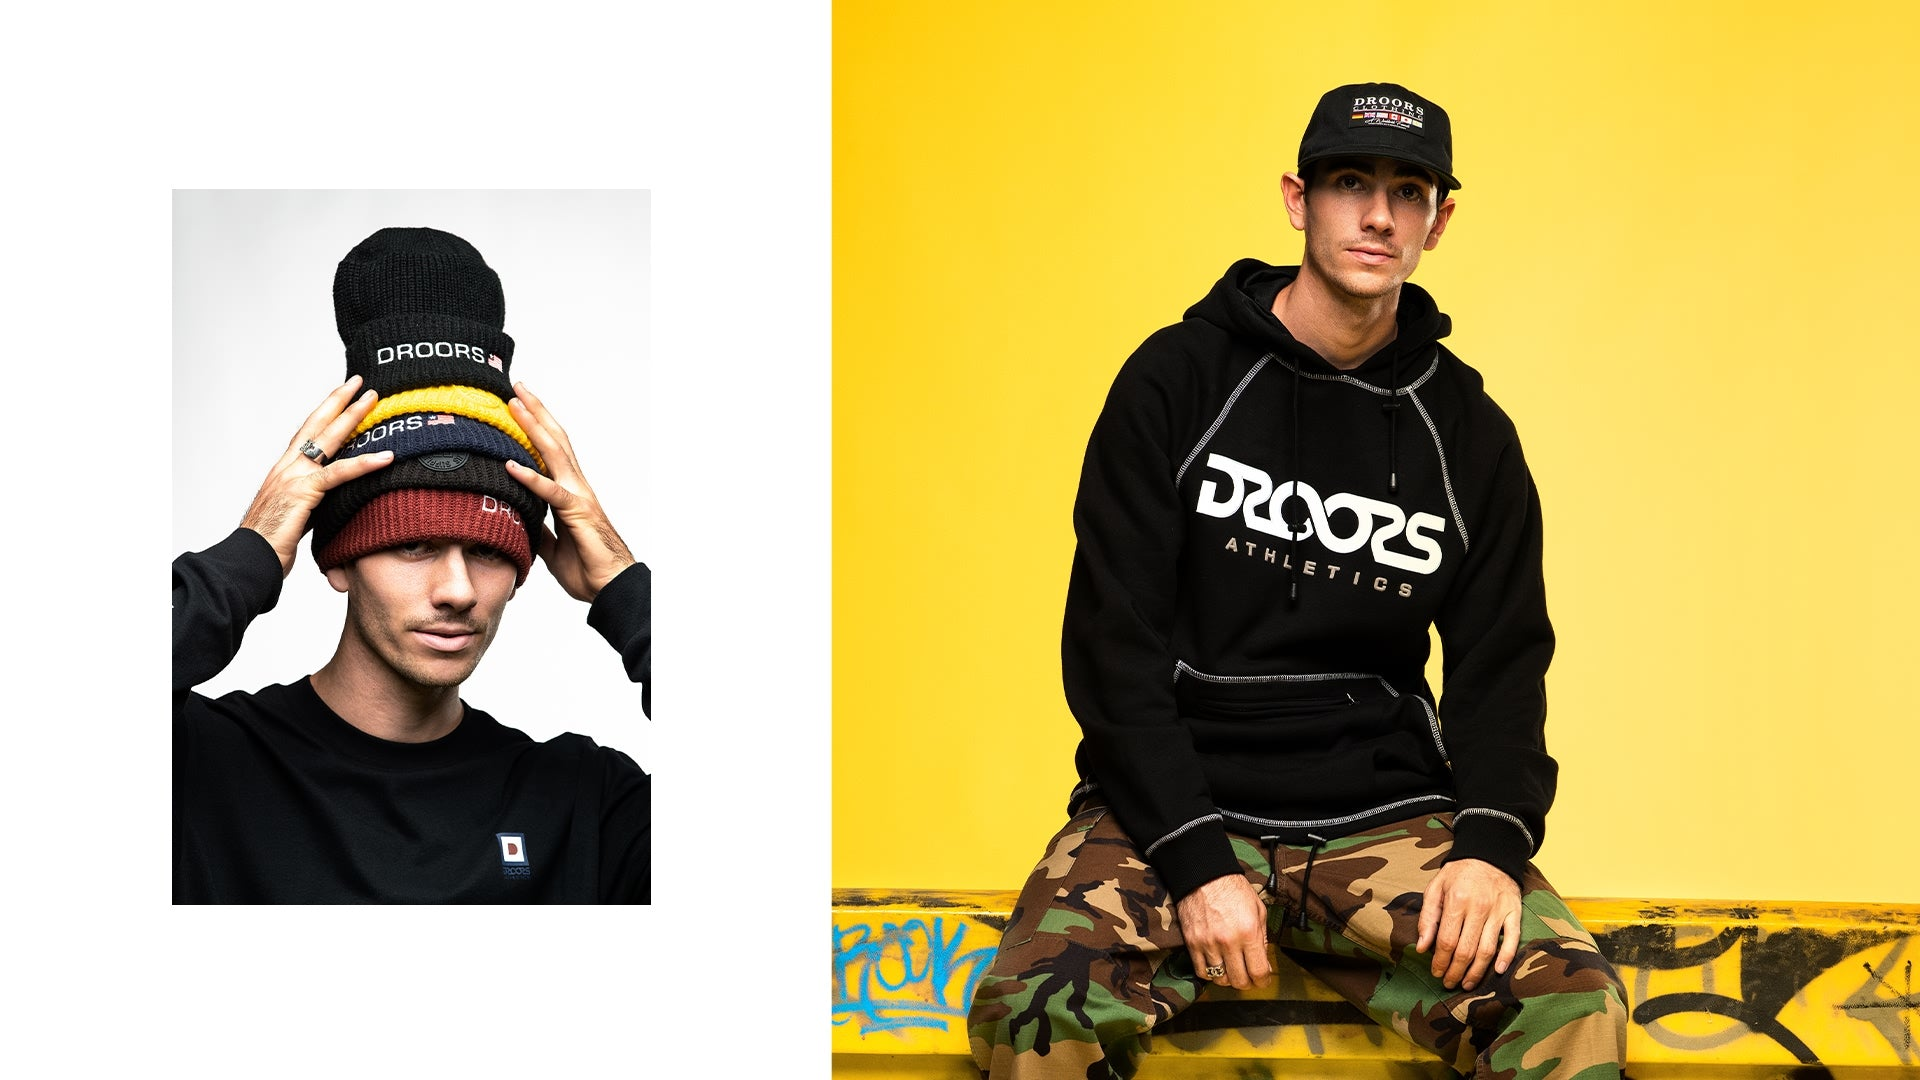 DC Shoes Droors 3 Collection